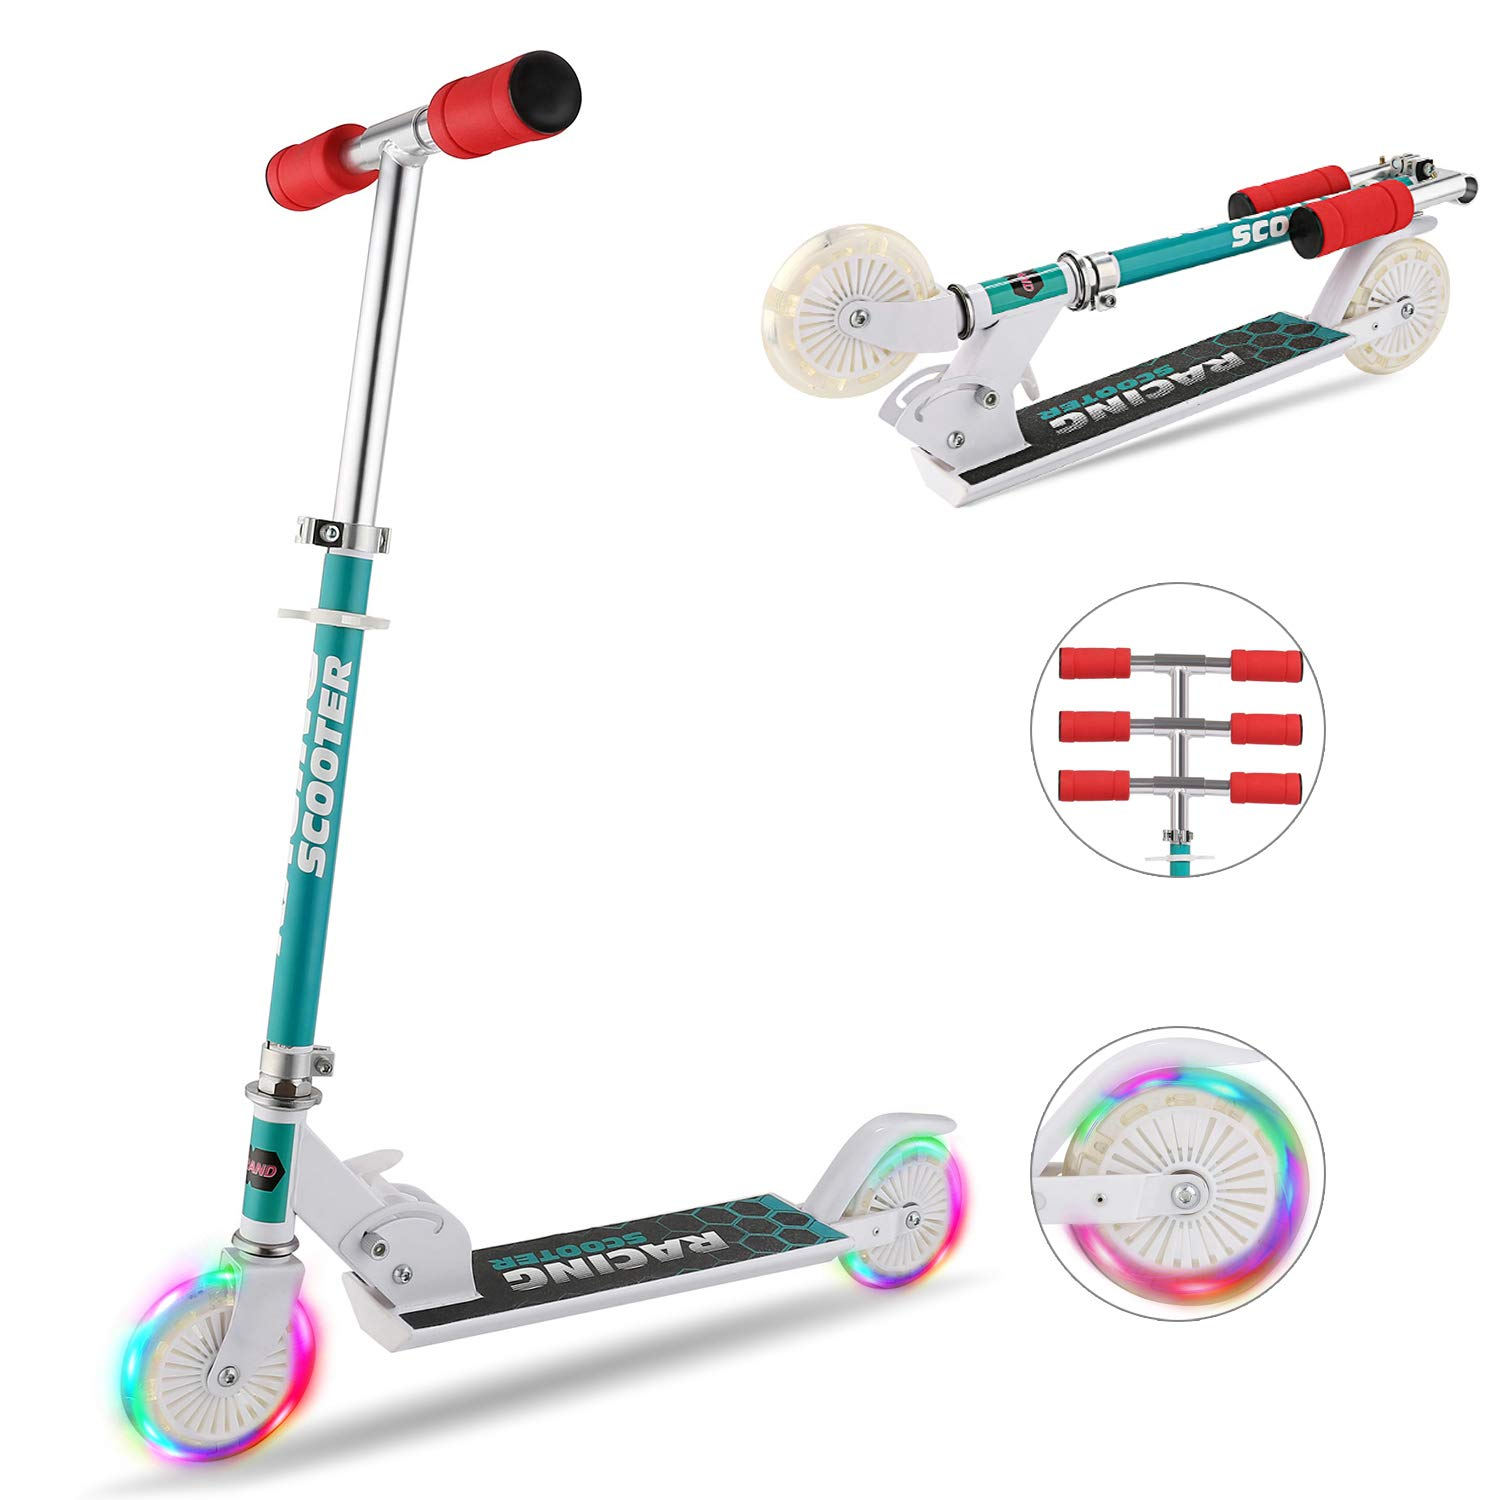 Hikole Scooter for Kids with LED Light Up Wheels, Adjustable Height Kick Scooters for Boys and Girls, Rear Fender Break|5lb Lightweight Folding Kids Scooter, 110lb Weight Capacity by Hikole